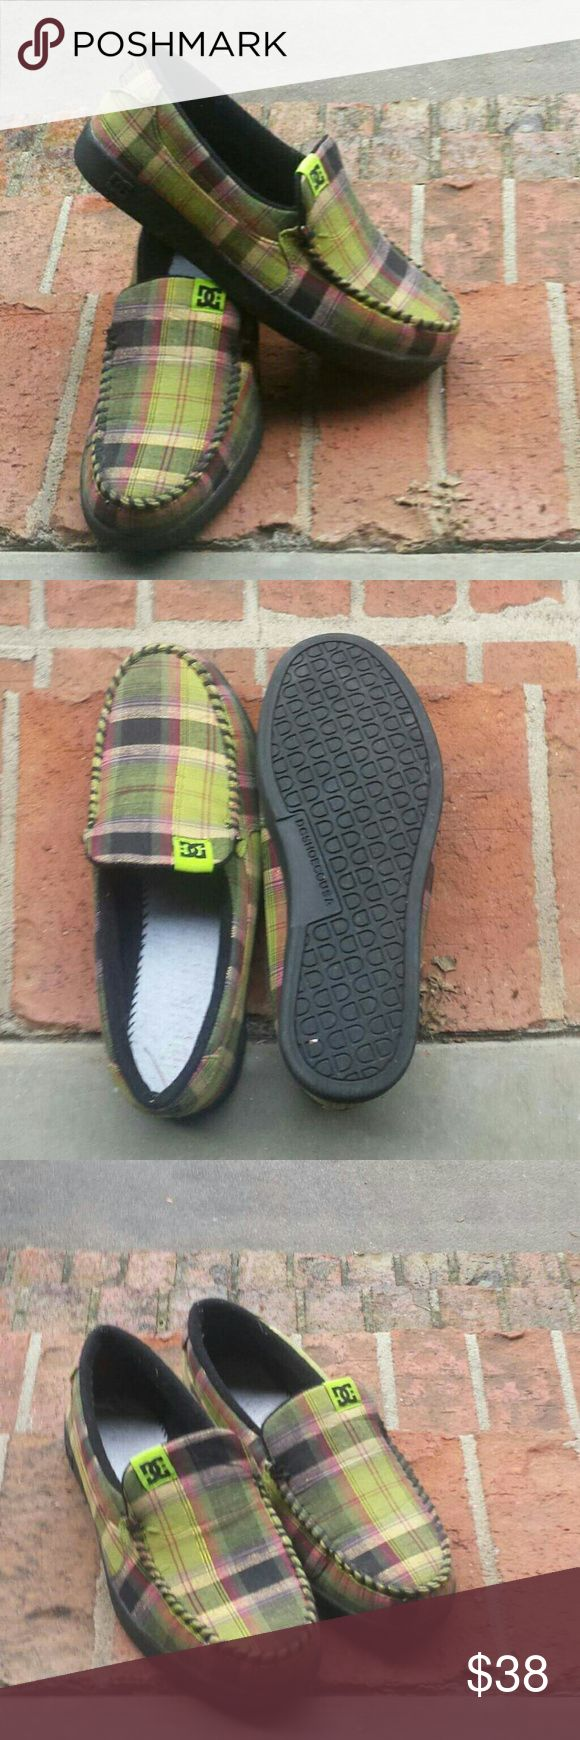 New DC Shoes Womens plaid DC shoes size 8 - My sister wore them to the mailbox & back, they haven't been worn since! Price is firm. DC Shoes Flats & Loafers